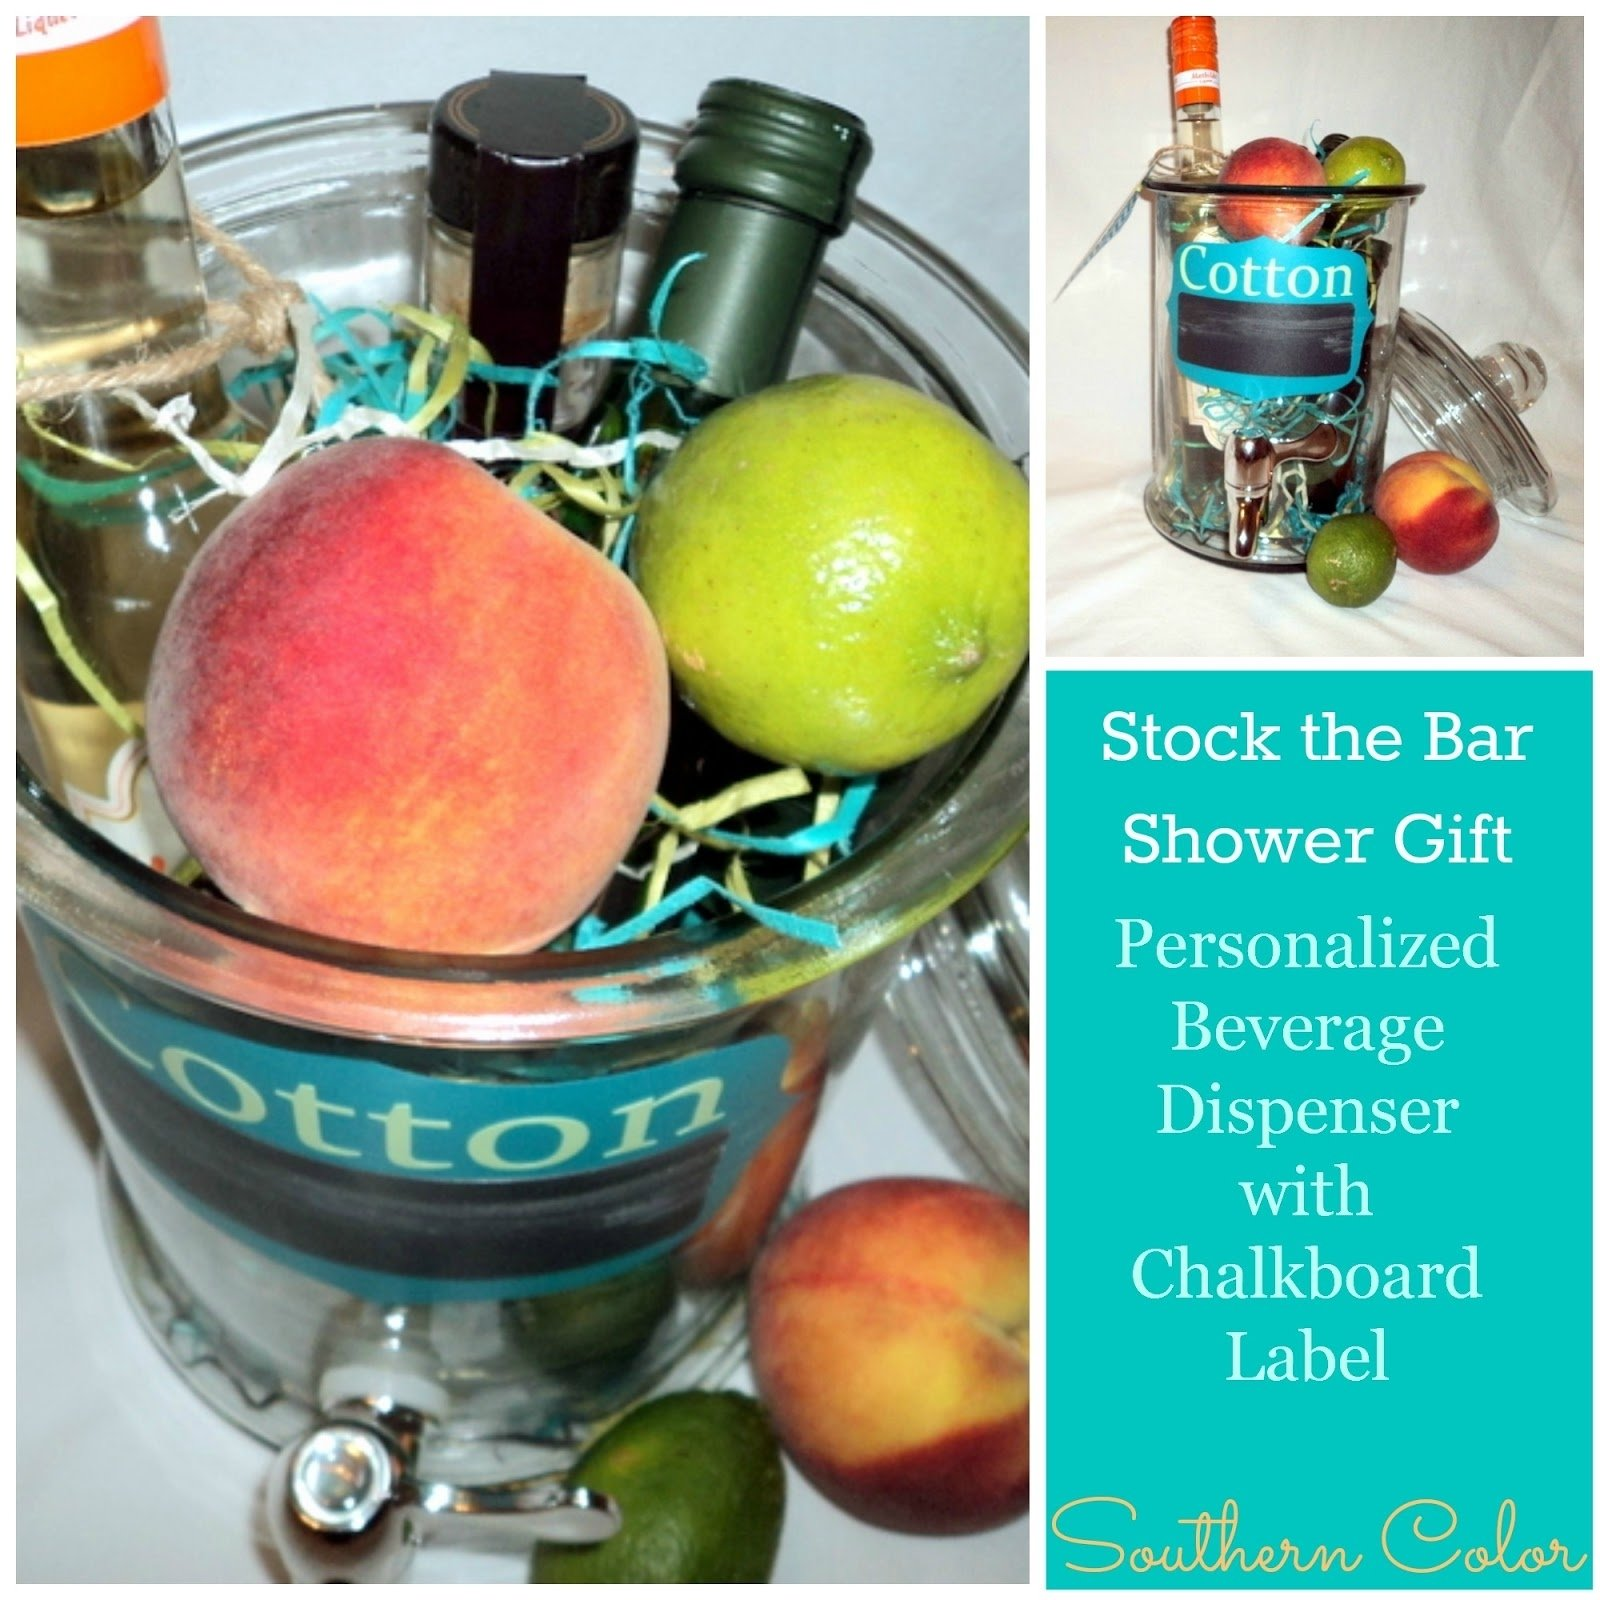 10 Lovely Stock The Bar Gift Ideas southern color stock the bar shower gift ga peach cocktail recipe 2021